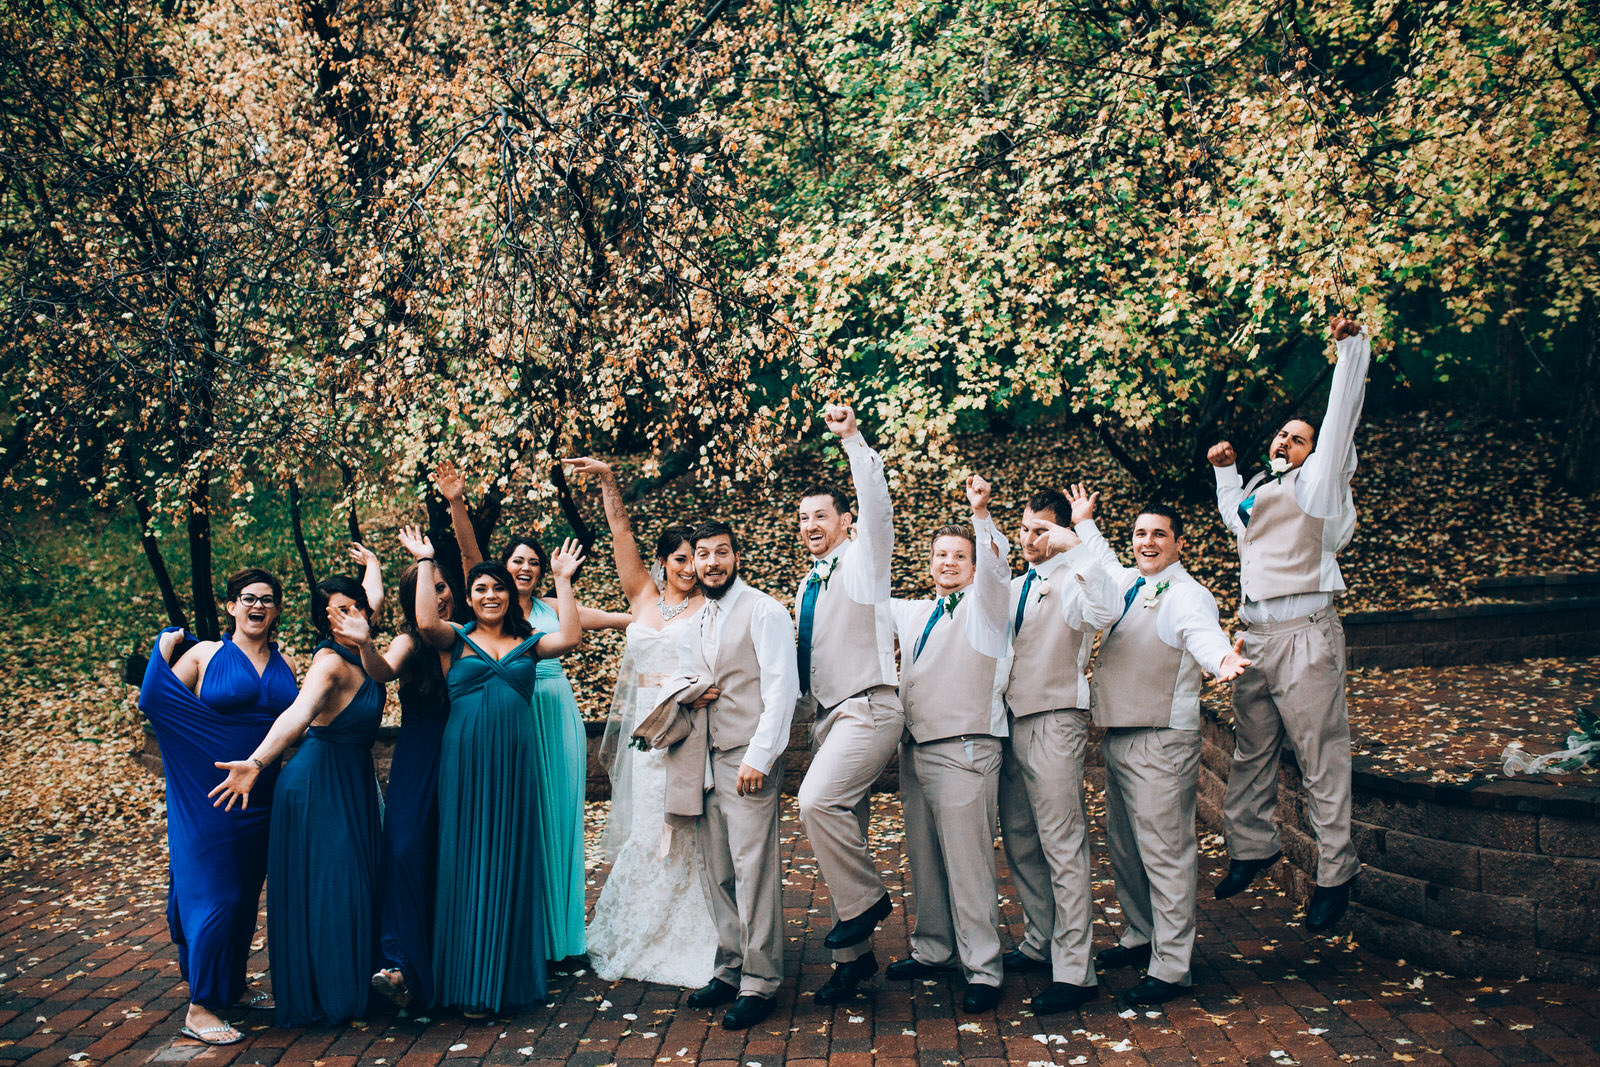 The Pines at Genesee - Denver Wedding Photographer (41 of 52)-1.jpg